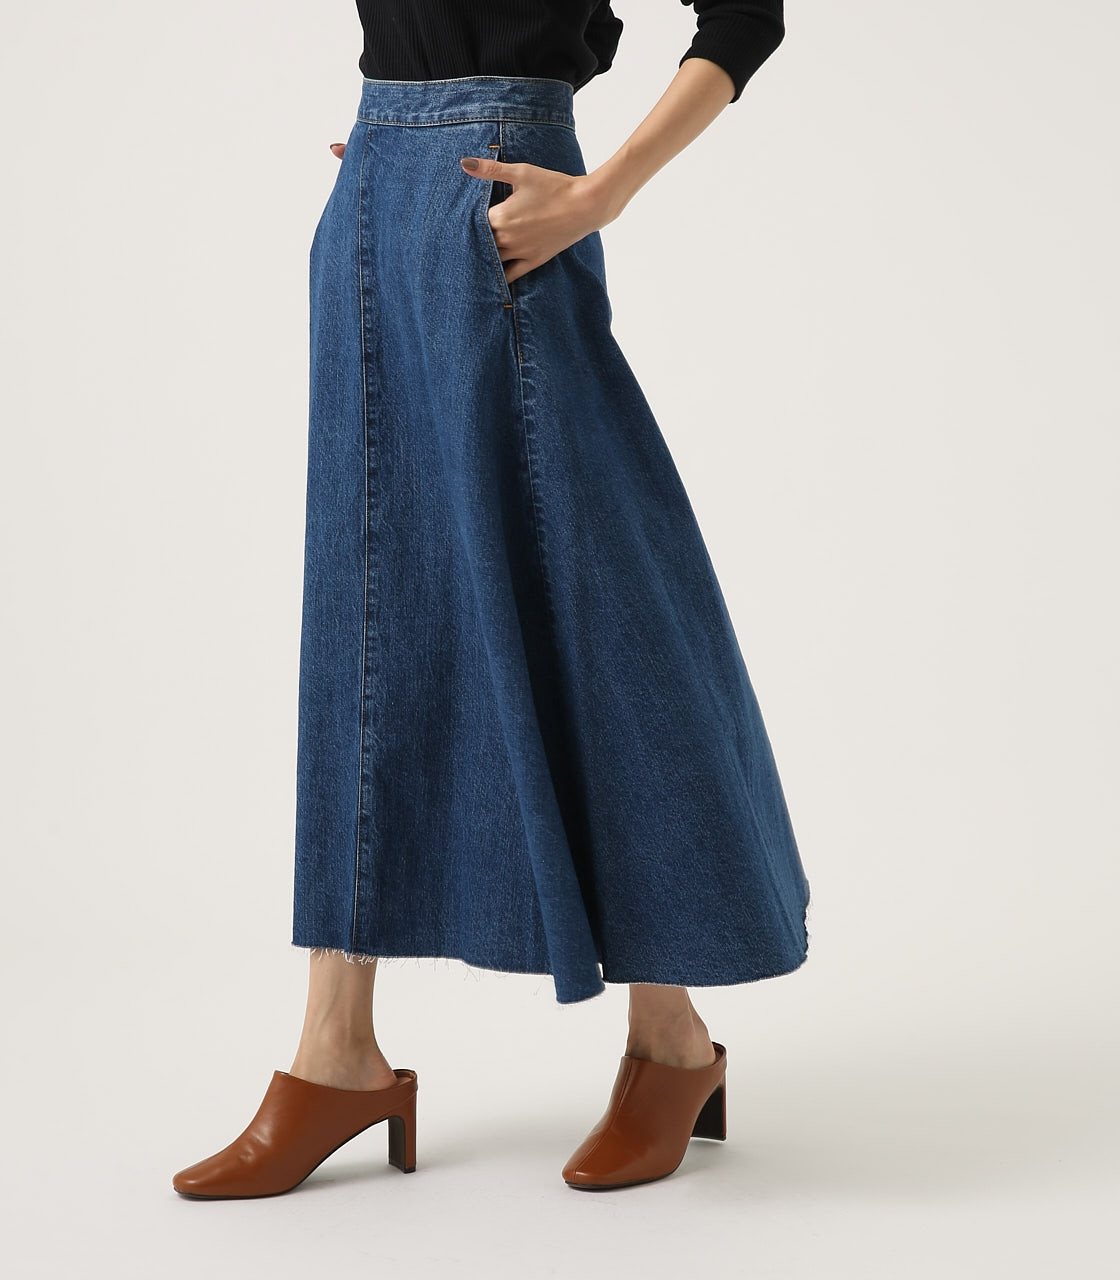 CUT OFF FLARE DENIM LONG SKIRT 詳細画像 BLU 2